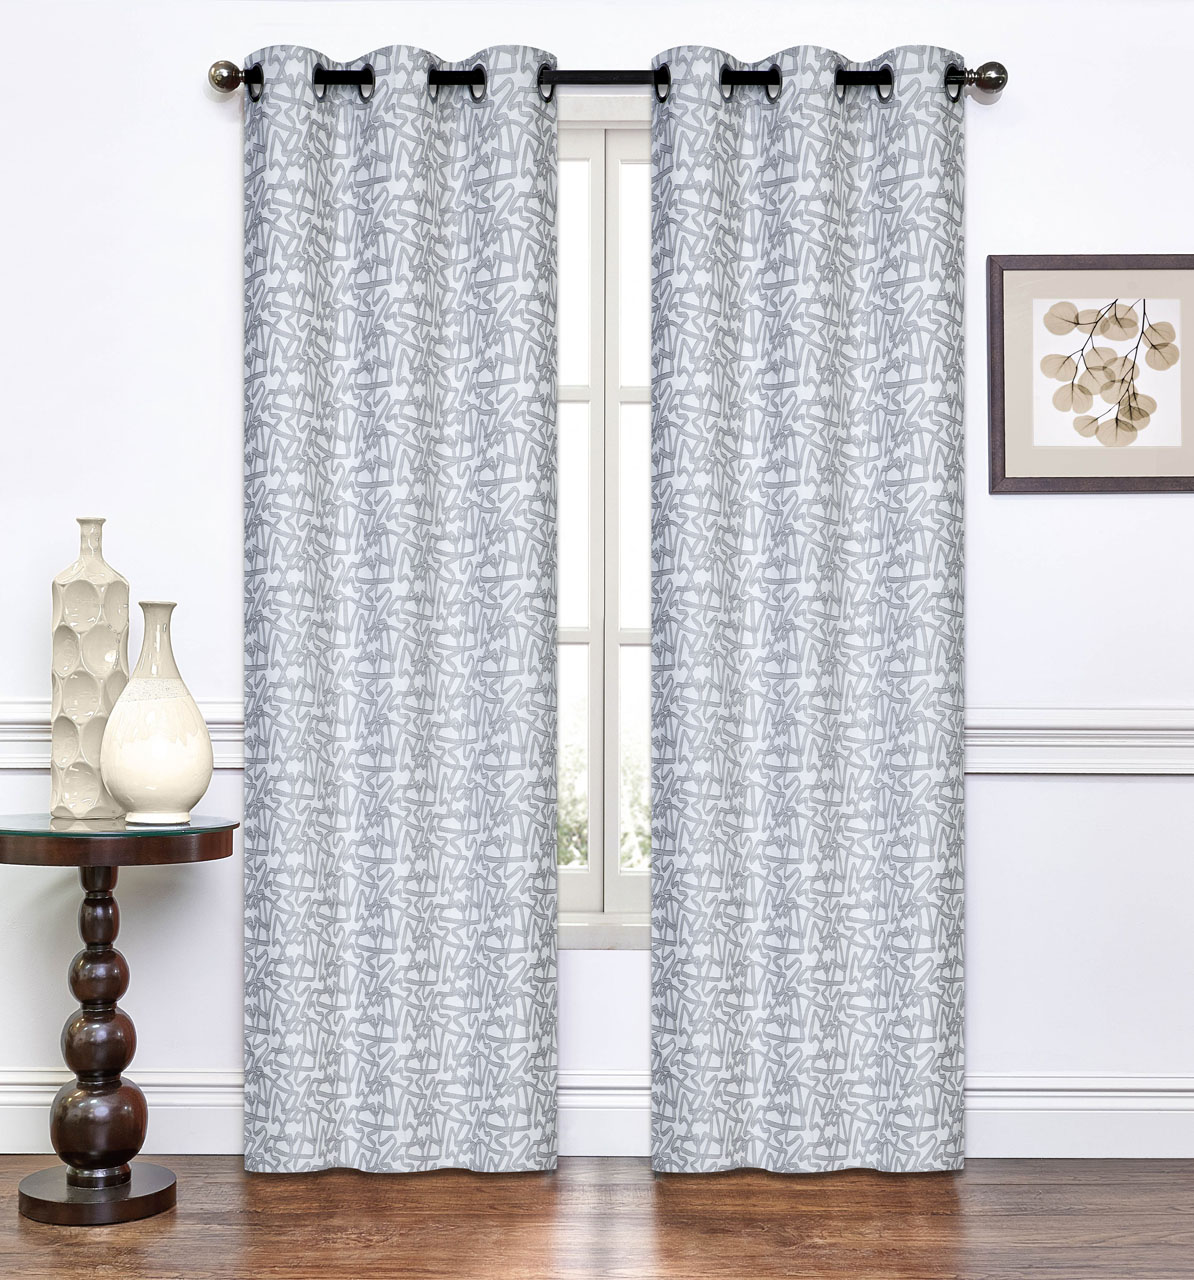 Pair Of Annette Window Curtain Panels W